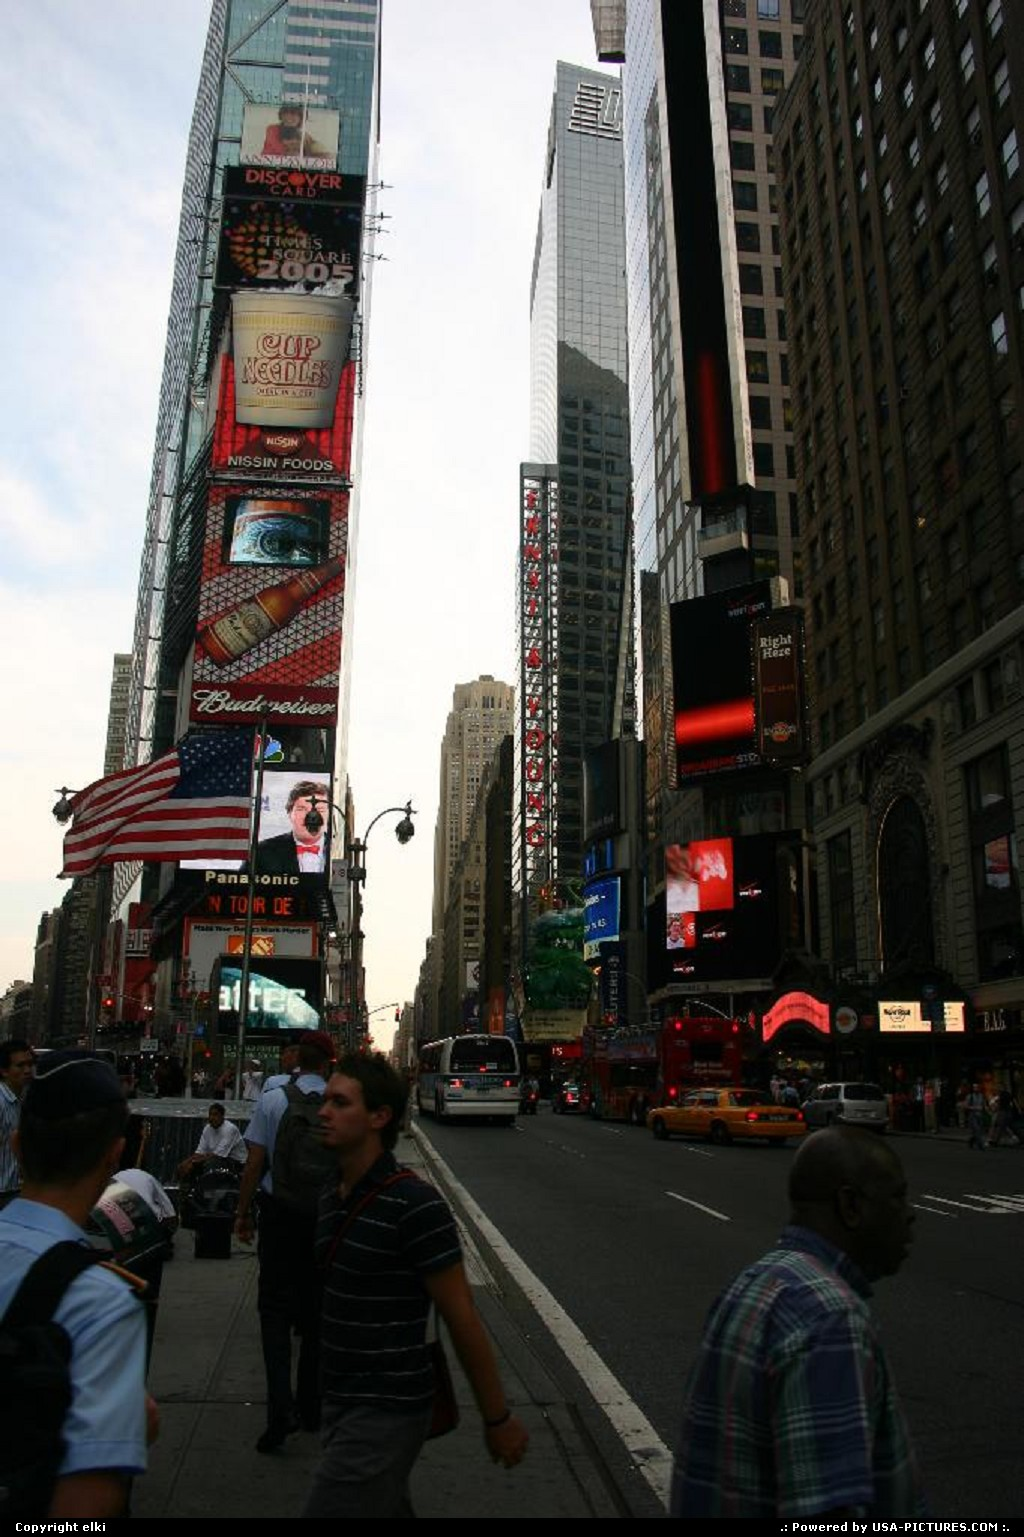 Picture by elki:New YorkNew-yorkTime square